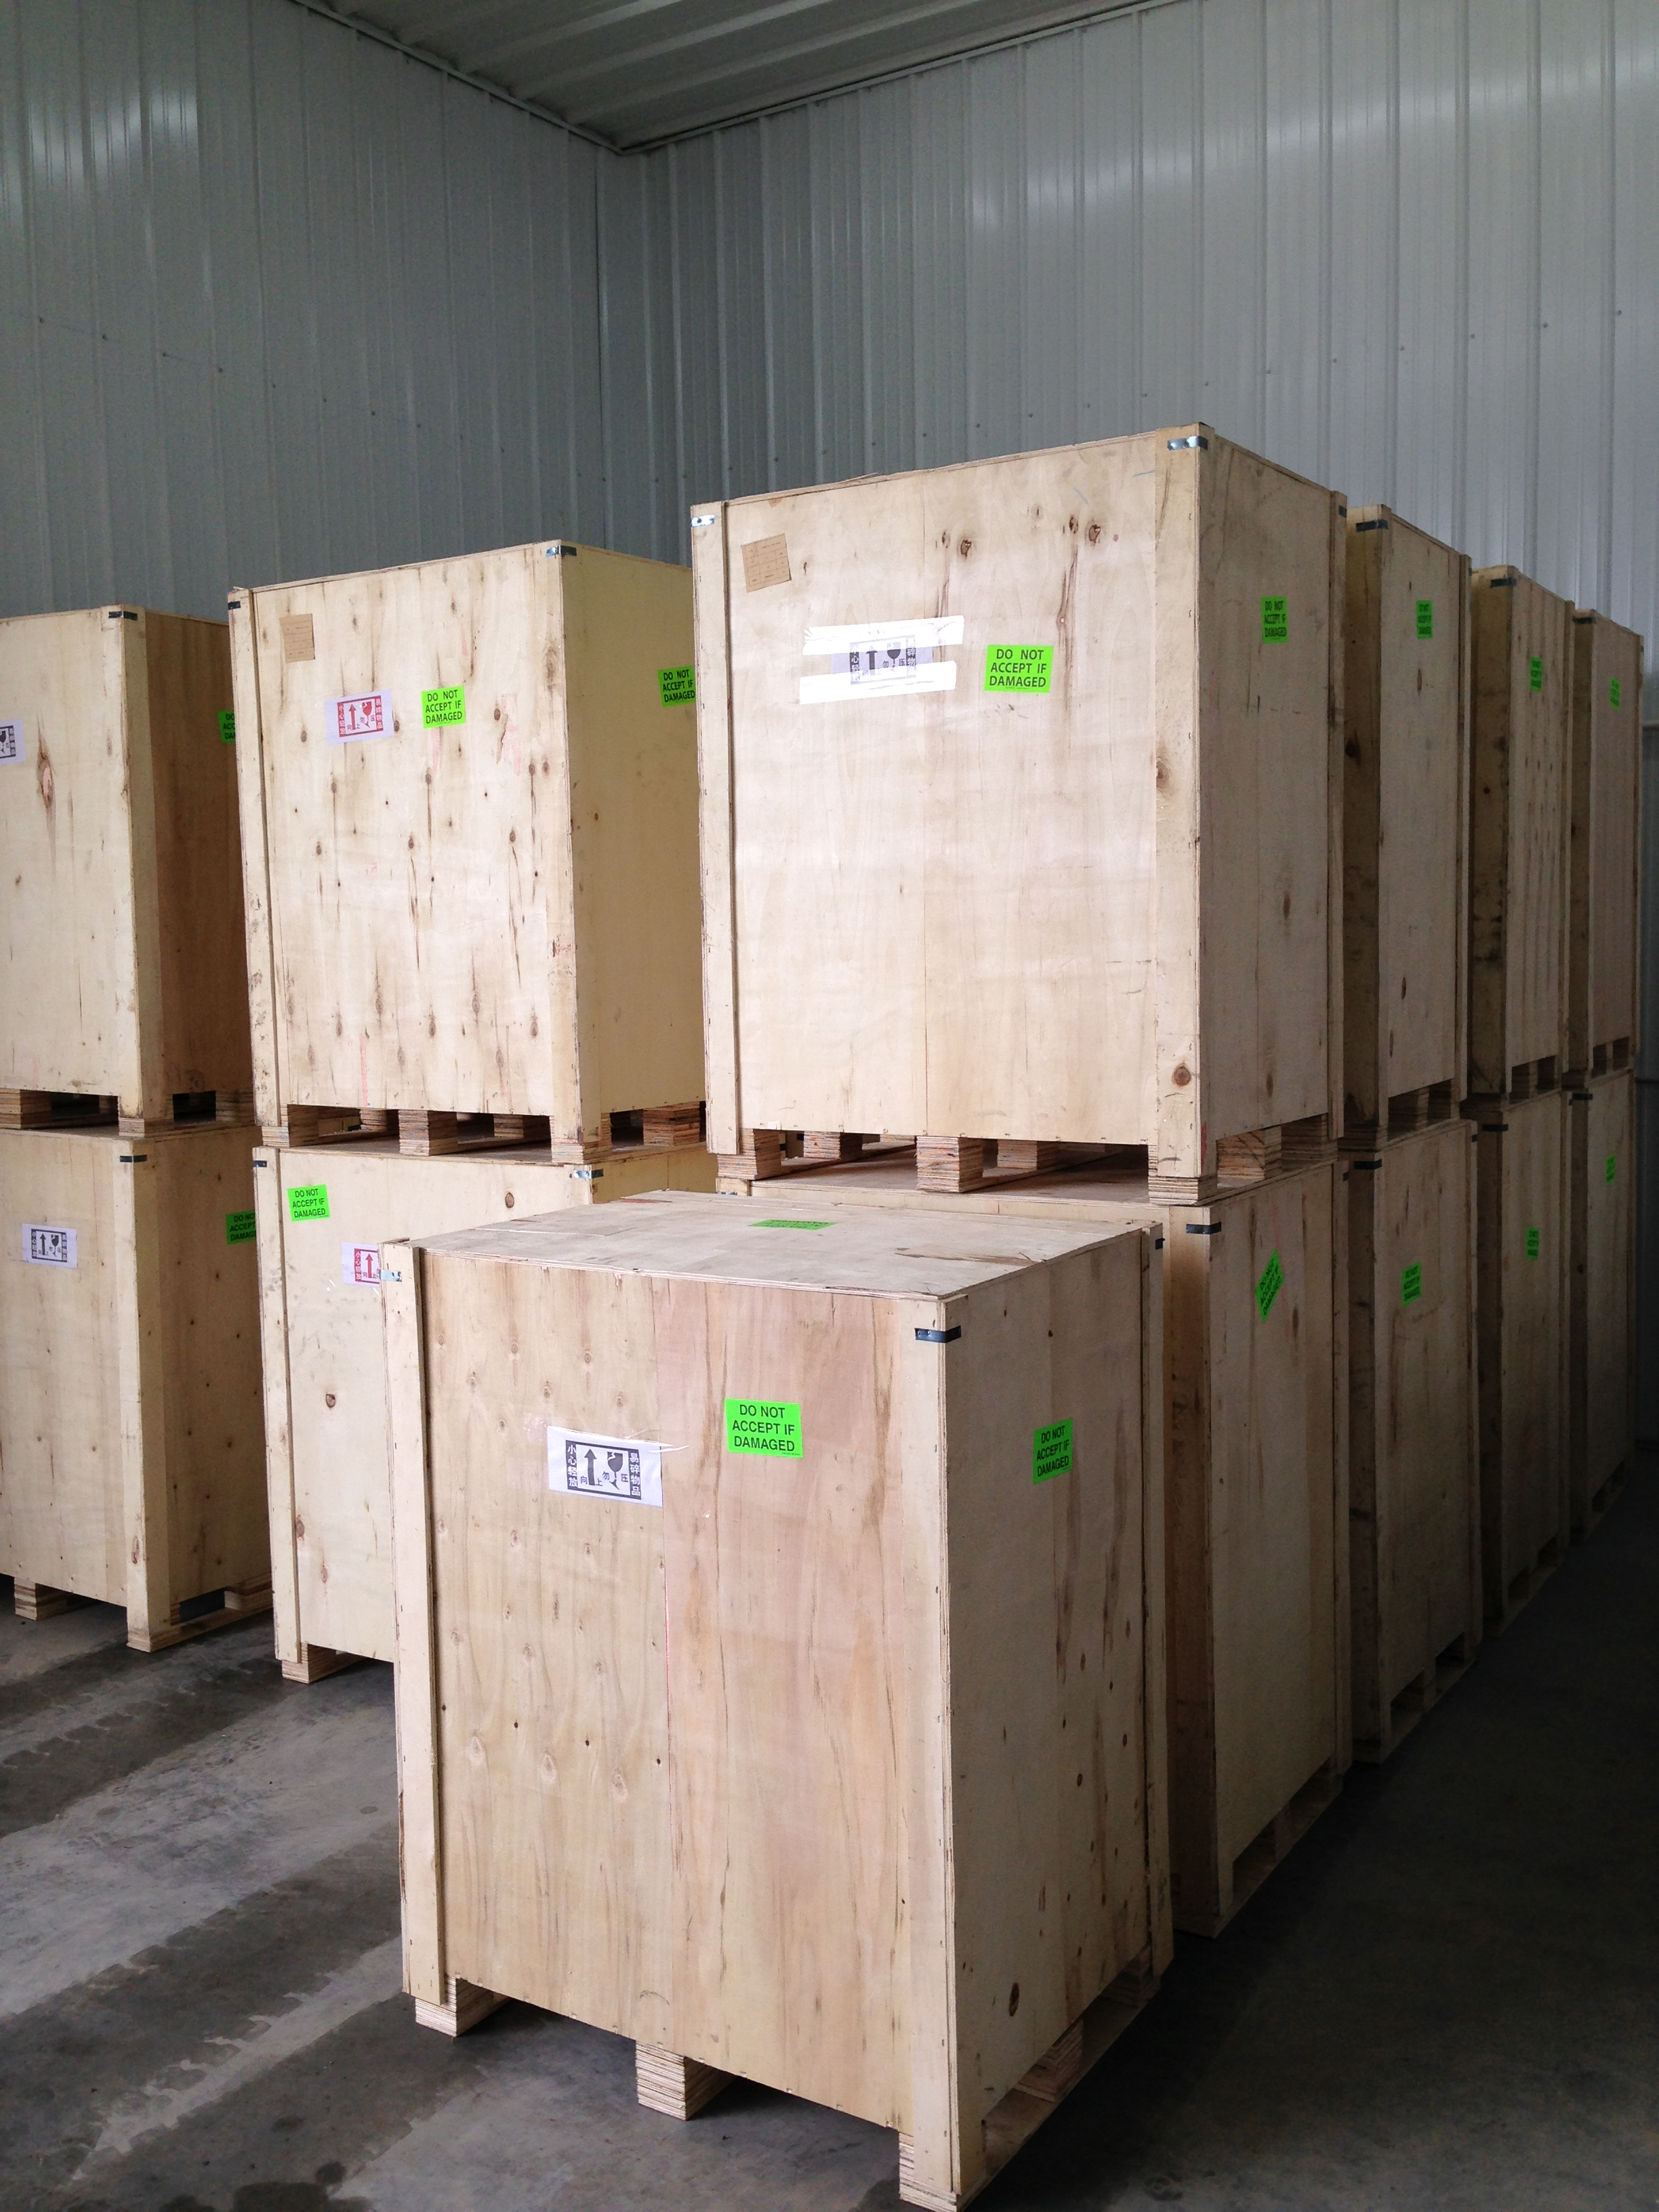 crates stacked.JPG?1498843863930